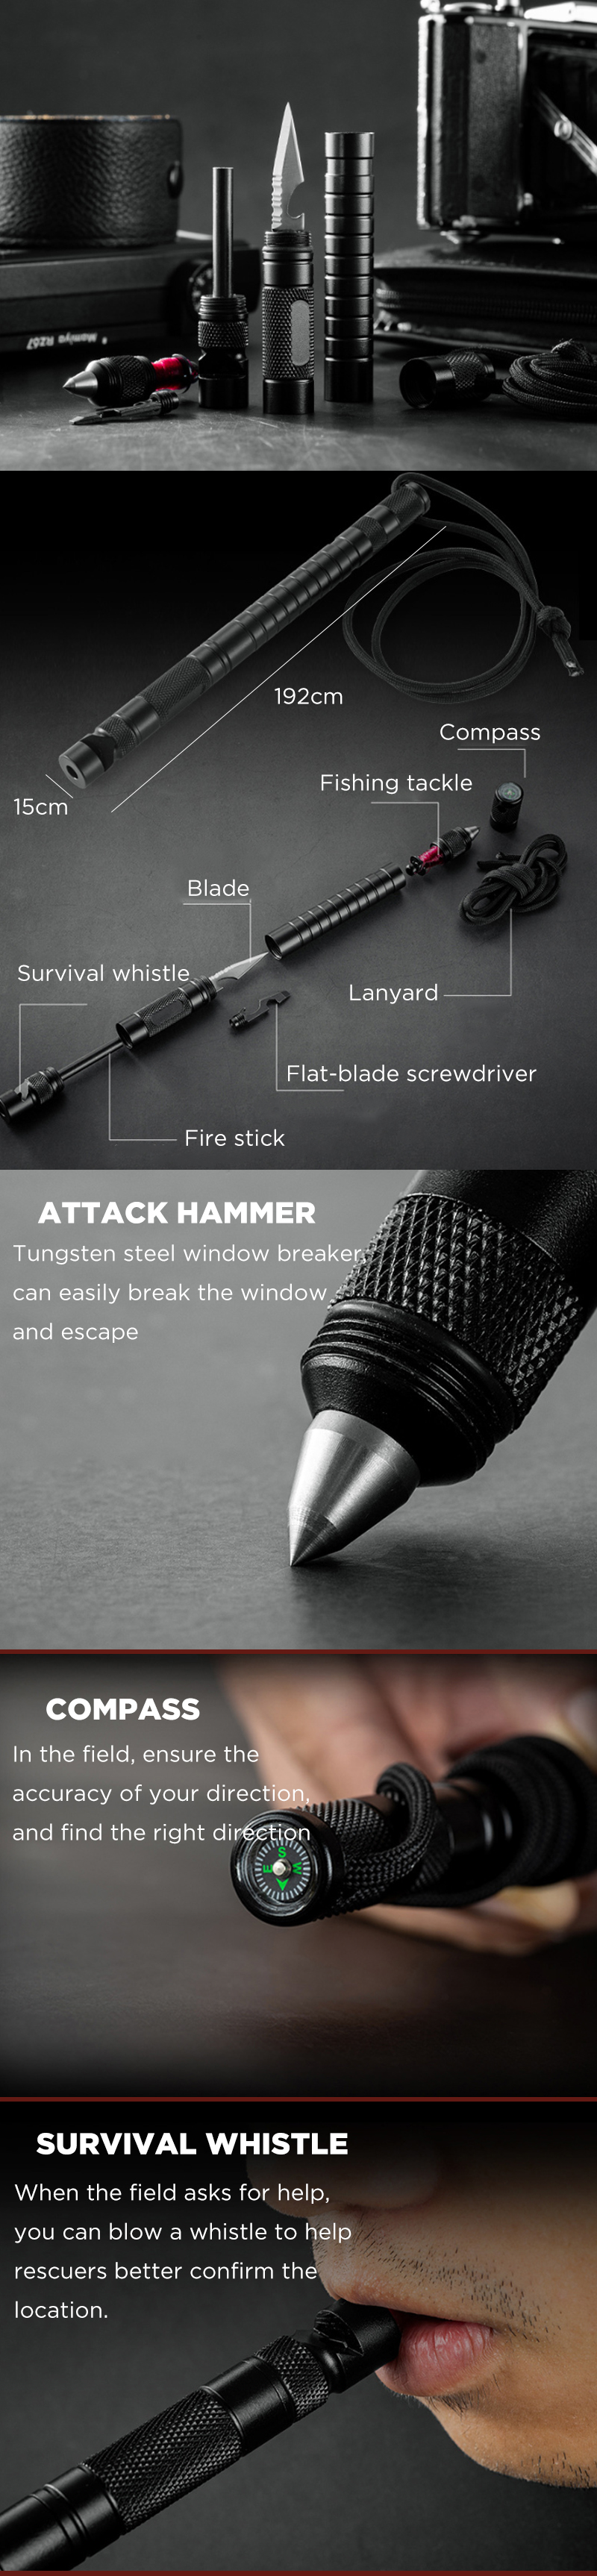 IPRee® 7 In 1 Outdoor EDC Fire Stick Survival Whistle Comapss Screwdriver Fishing Line Safety Hammer Multifunctional Tools Kit Camping Emergency